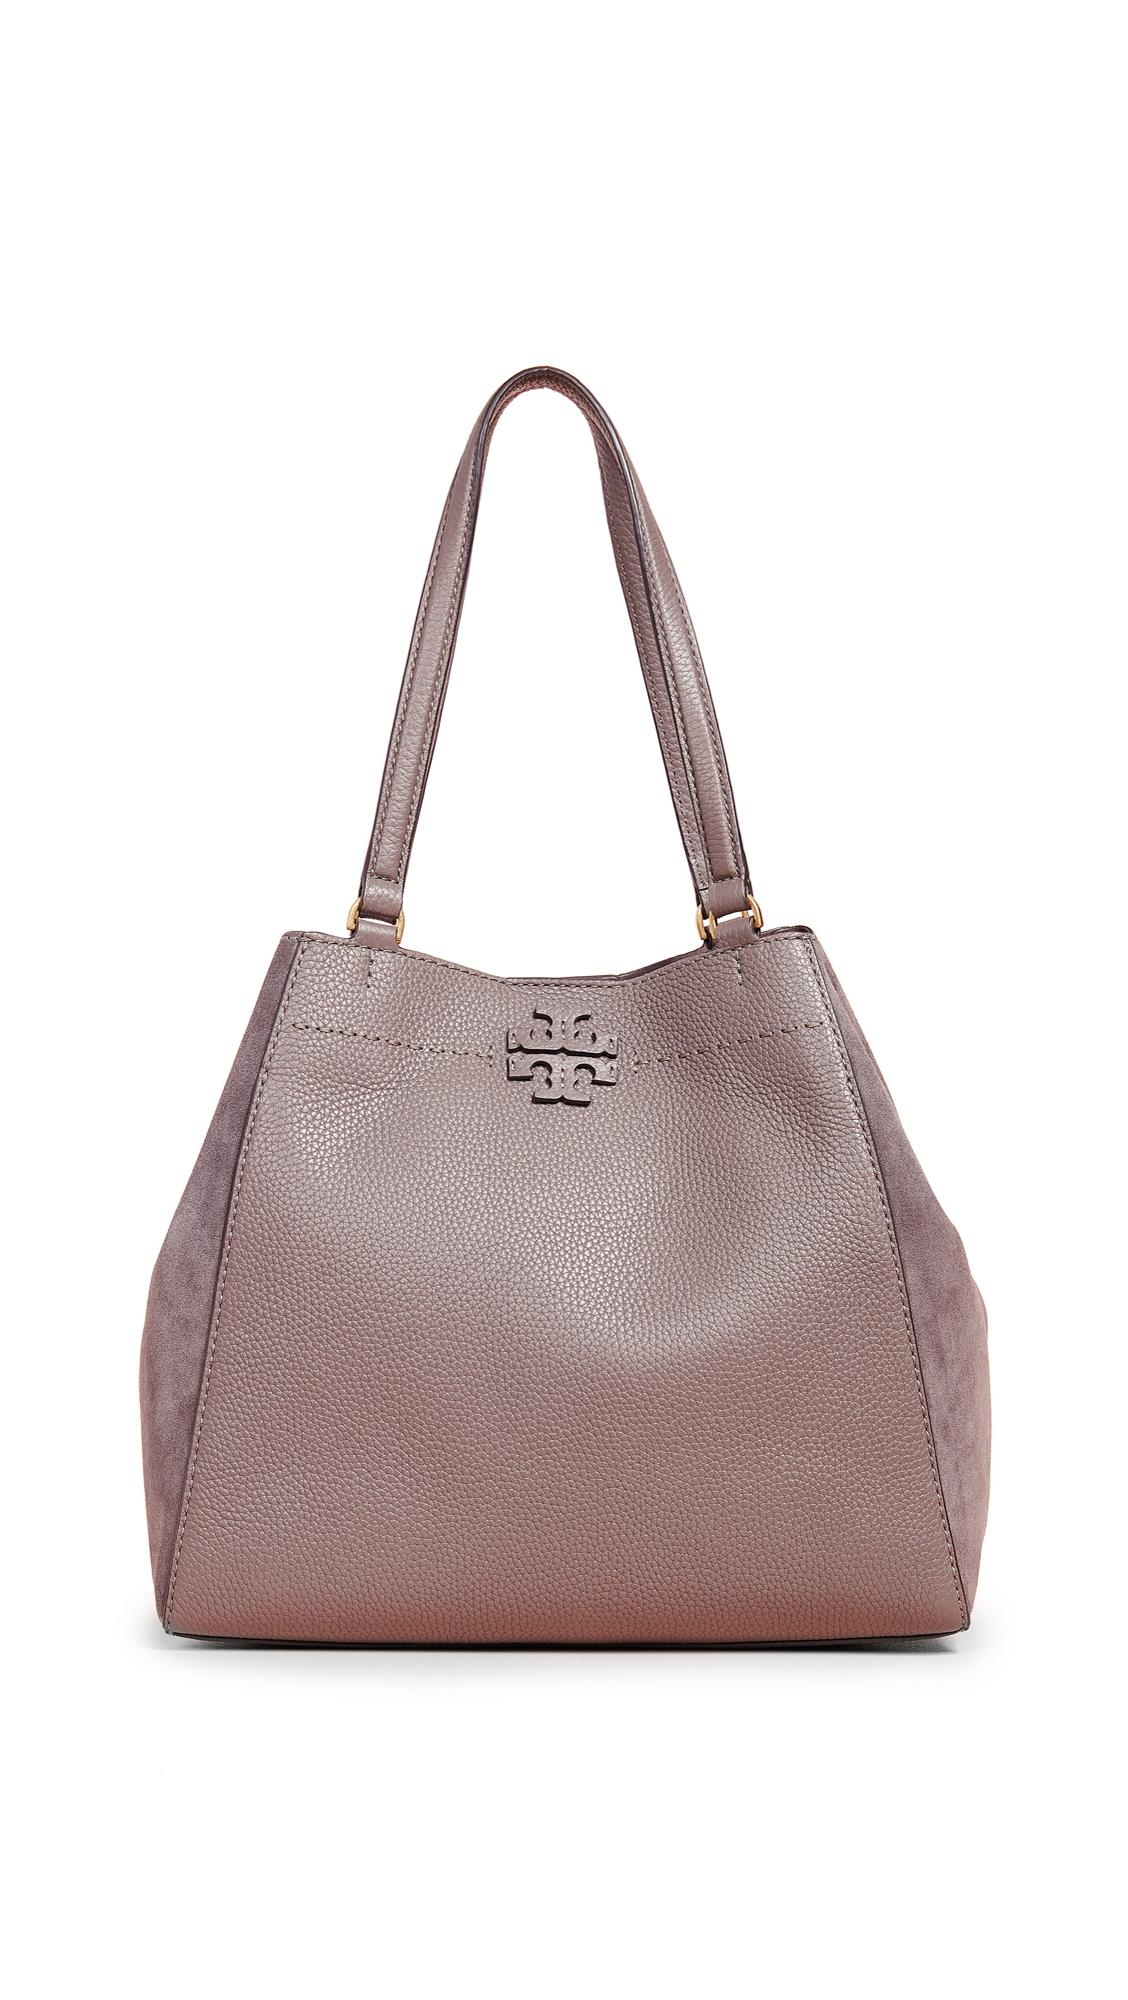 Tory Burch Mcgraw Mixed Media Carryall In Silver Maple